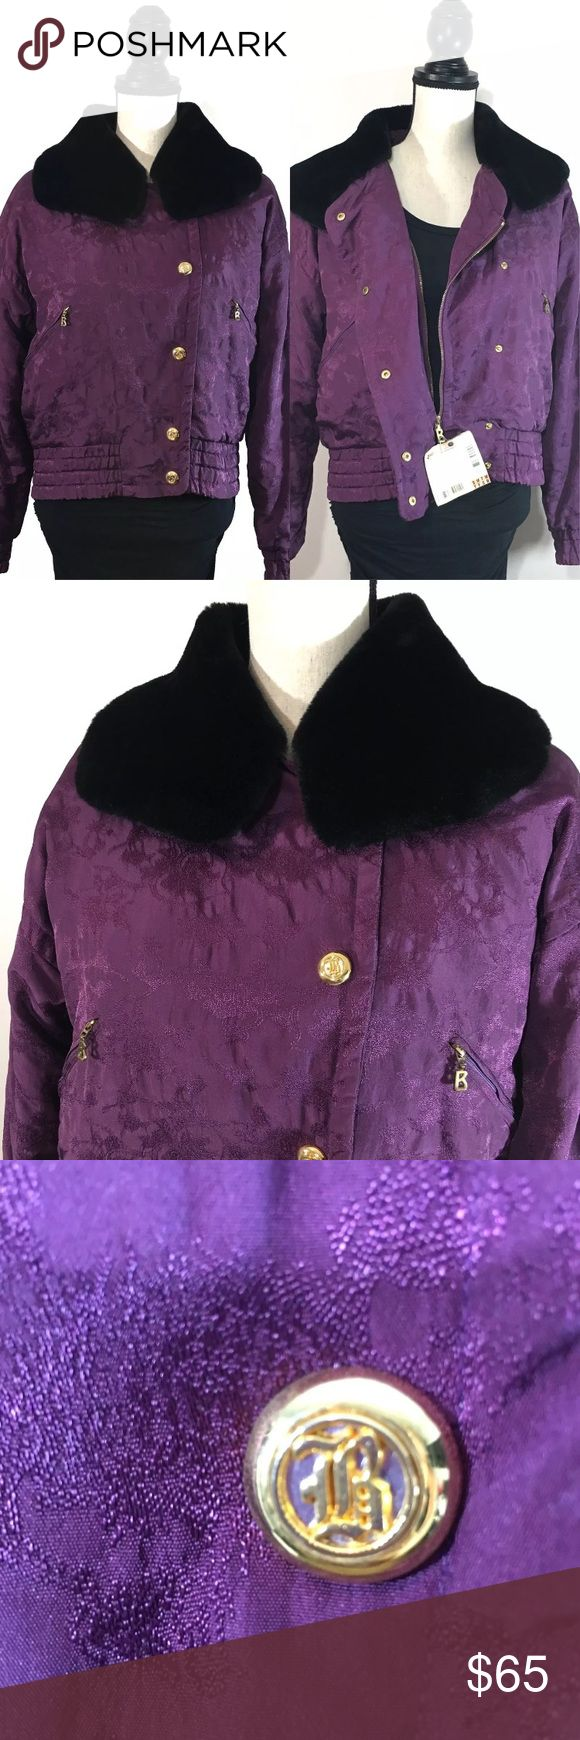 "VTG 90's BOGNER Ski Floral Purple Faux Fur Jacket PRISTINE CONDITION • Bogner Purple Full Zip Jacket Coat - 90's Ski Fashion! *Attached ""Vail Valley"" Colorado Ski Pass! * Size 6 (Small) * Bogner purple floral * Black faux fur collar * Gold tone hardware * Cropped fit * ""B"" Bogner & Snowflakes embroidered * Lined & insulated * Inner pocket * Shell: 100% Nylon-Poly * Lining: 100% Acrylic & 100% Nylon  * EXCELLENT pre-owned condition! No sign of wear. Ready to Wear!   Measures: * Bust- 46""…"